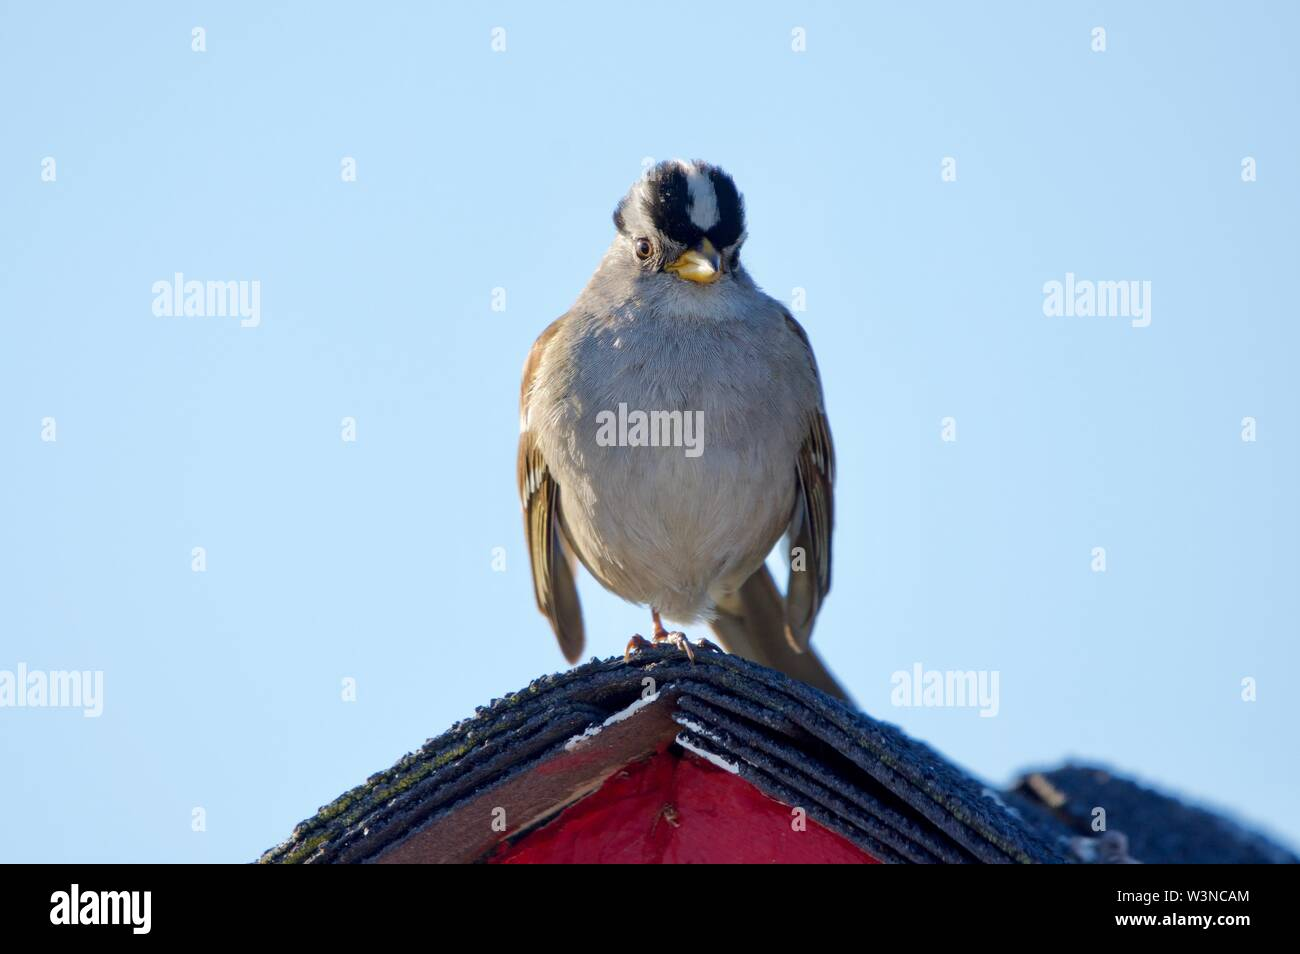 White-crowned sparrow perches on one leg on peak of bright pink shed in evening, Ogden Point, Victoria, British Columbia - Stock Image